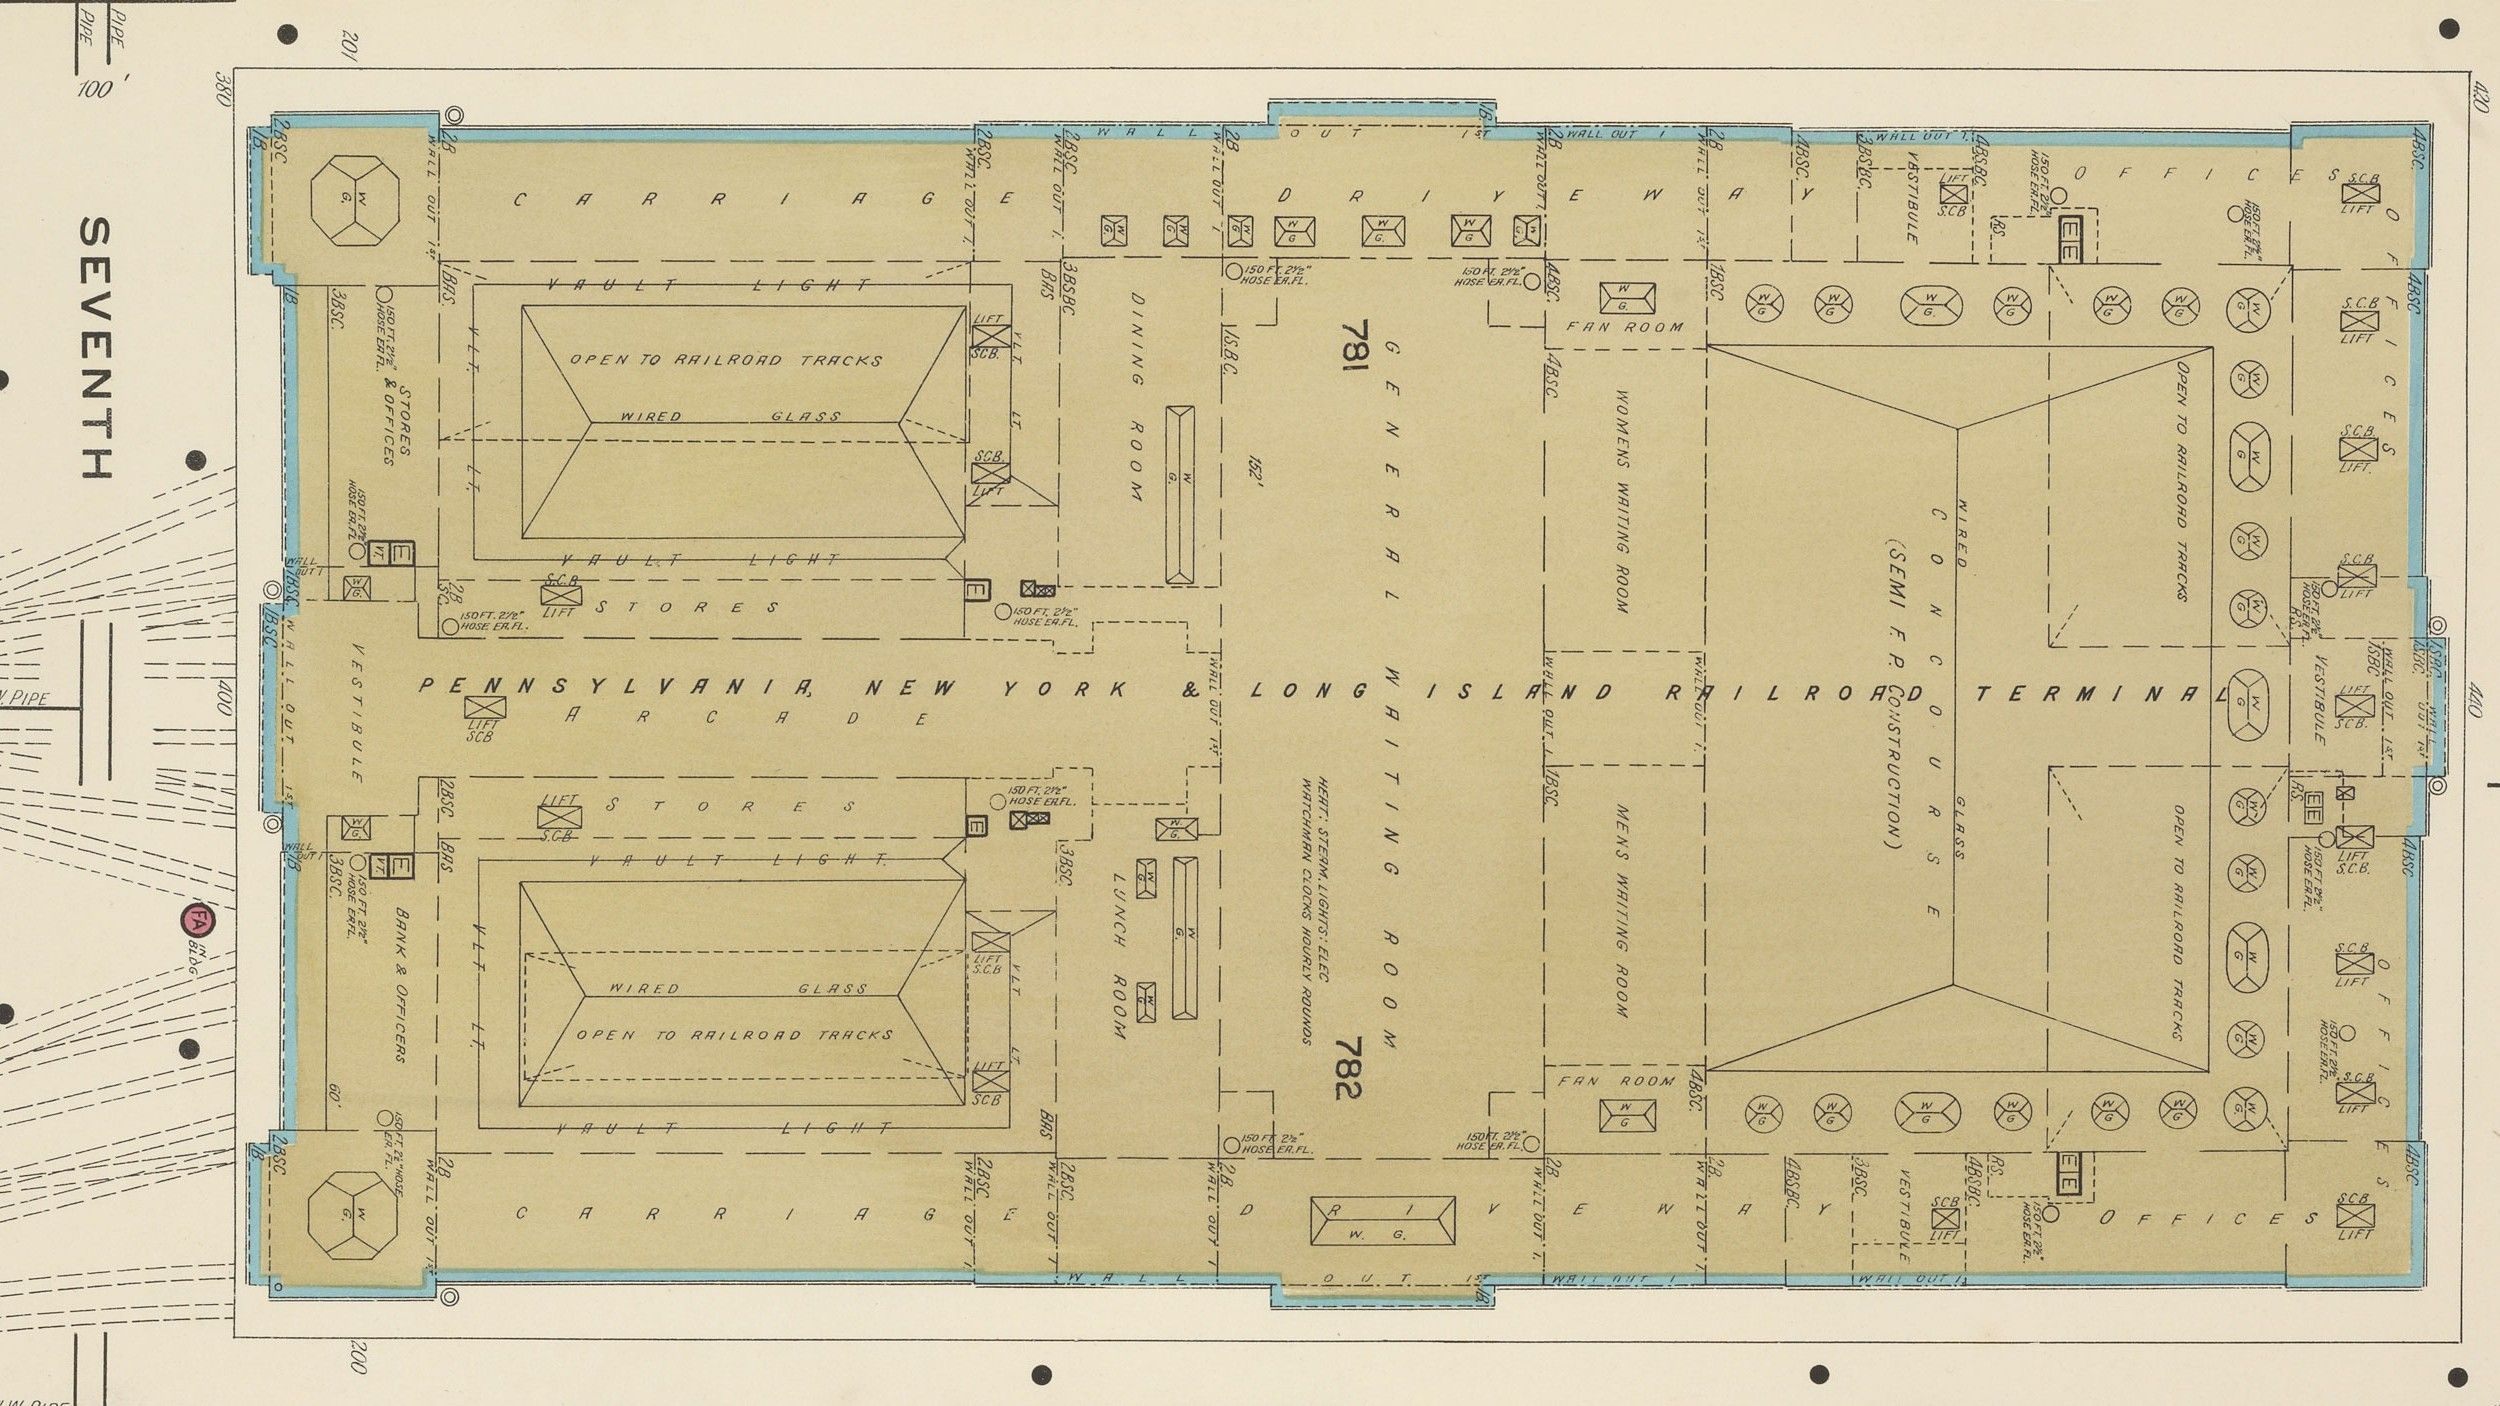 Fascinating Old Maps Of Both Real And Ridiculous NYC Transit Projects - Penn station nyc maps google com